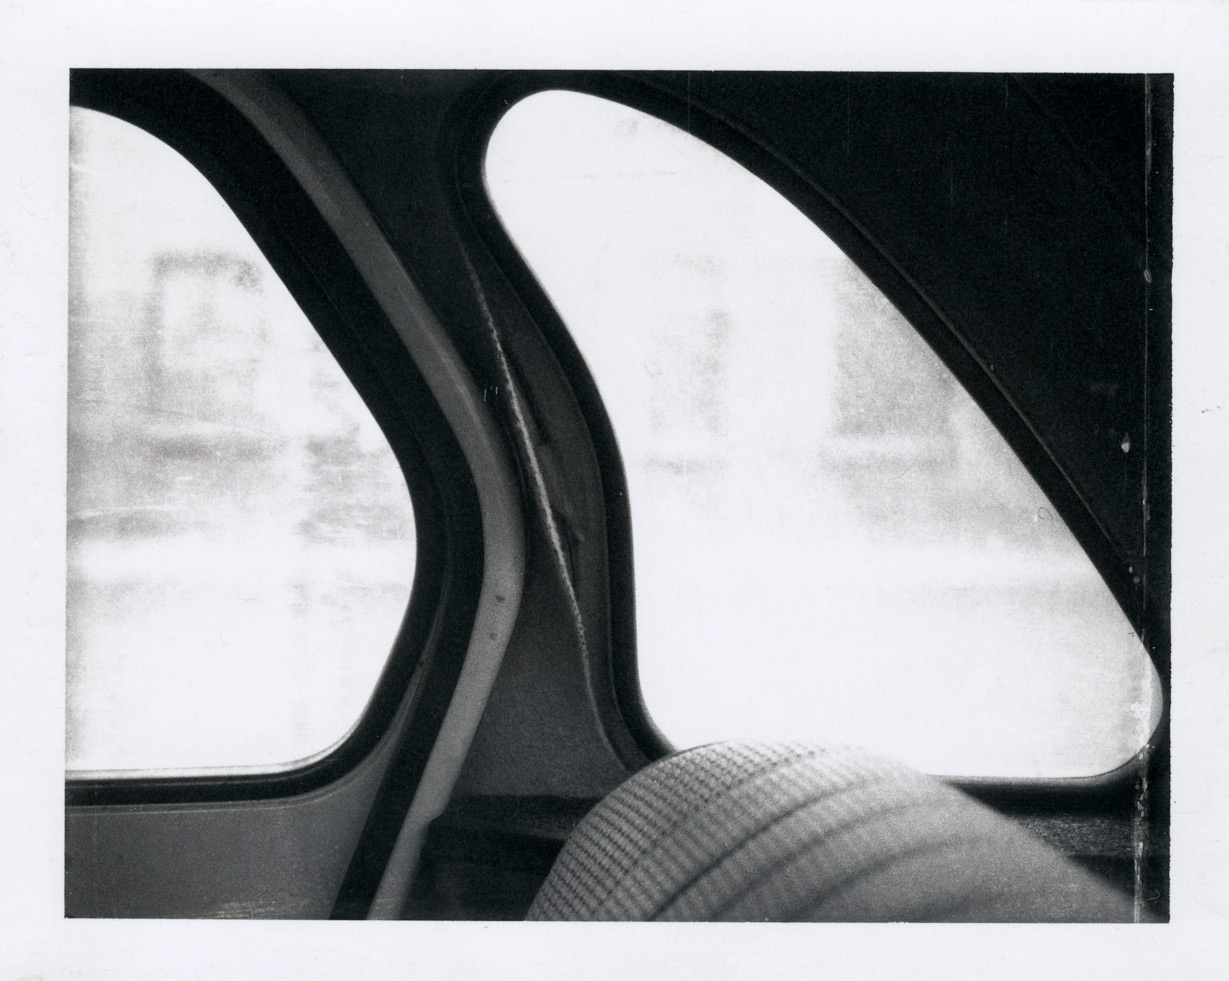 Detail of a black and white Polaroid by Robert Mapplethorpe of a car window in sunlight